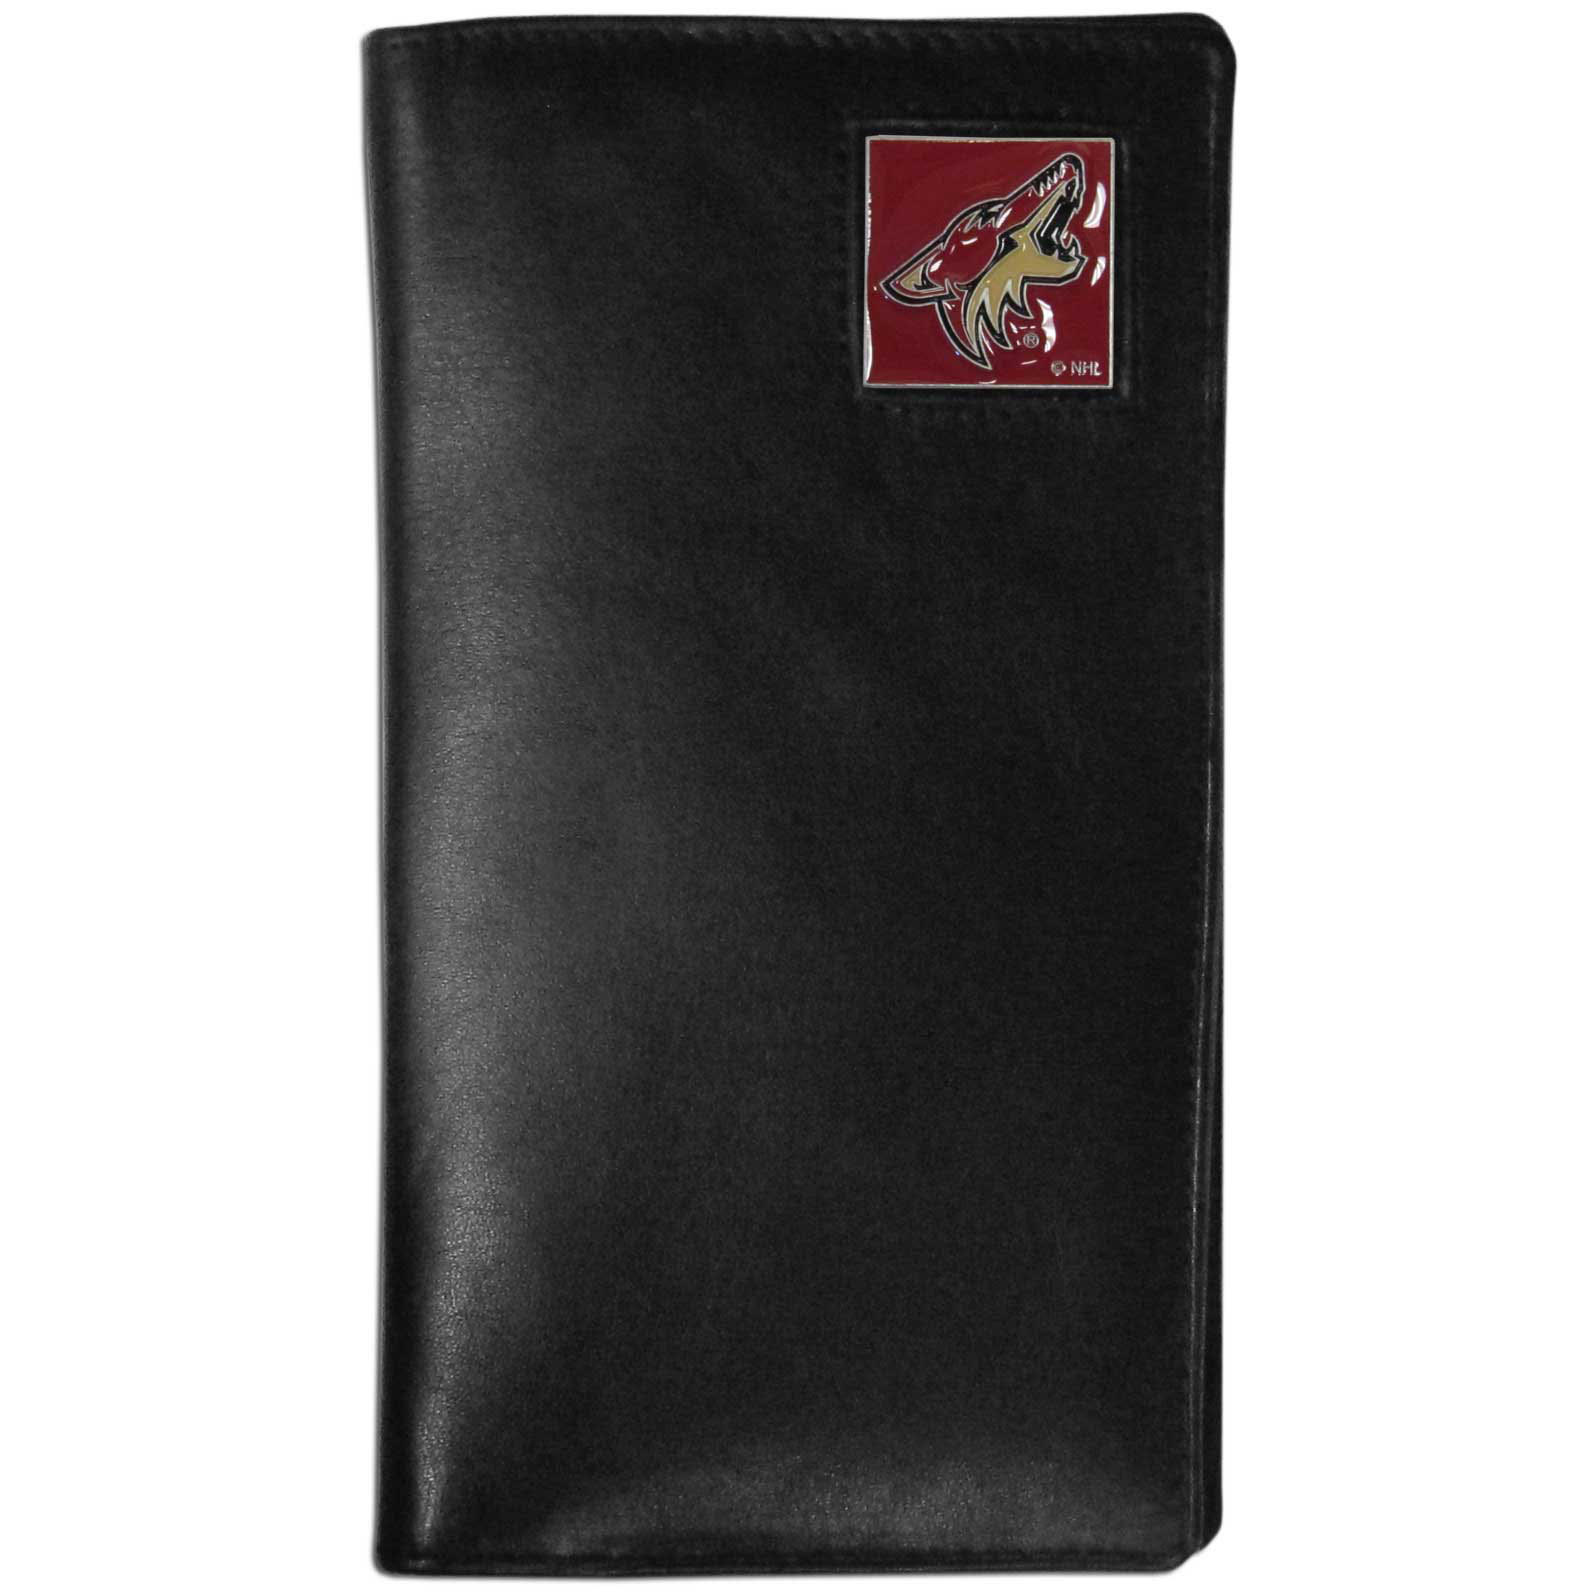 Arizona Coyotes Tall Leather Wallet - This officially licensed Arizona Coyotes tall leather wallet cover is made of high quality leather with a fully cast metal Arizona Coyotes emblem with enameled Arizona Coyotes color detail. The cover fits both side and top loaded checks and includes a large zippered pocket, windowed ID slot, numerous credit card slots and billfold pocket. Thank you for visiting CrazedOutSports